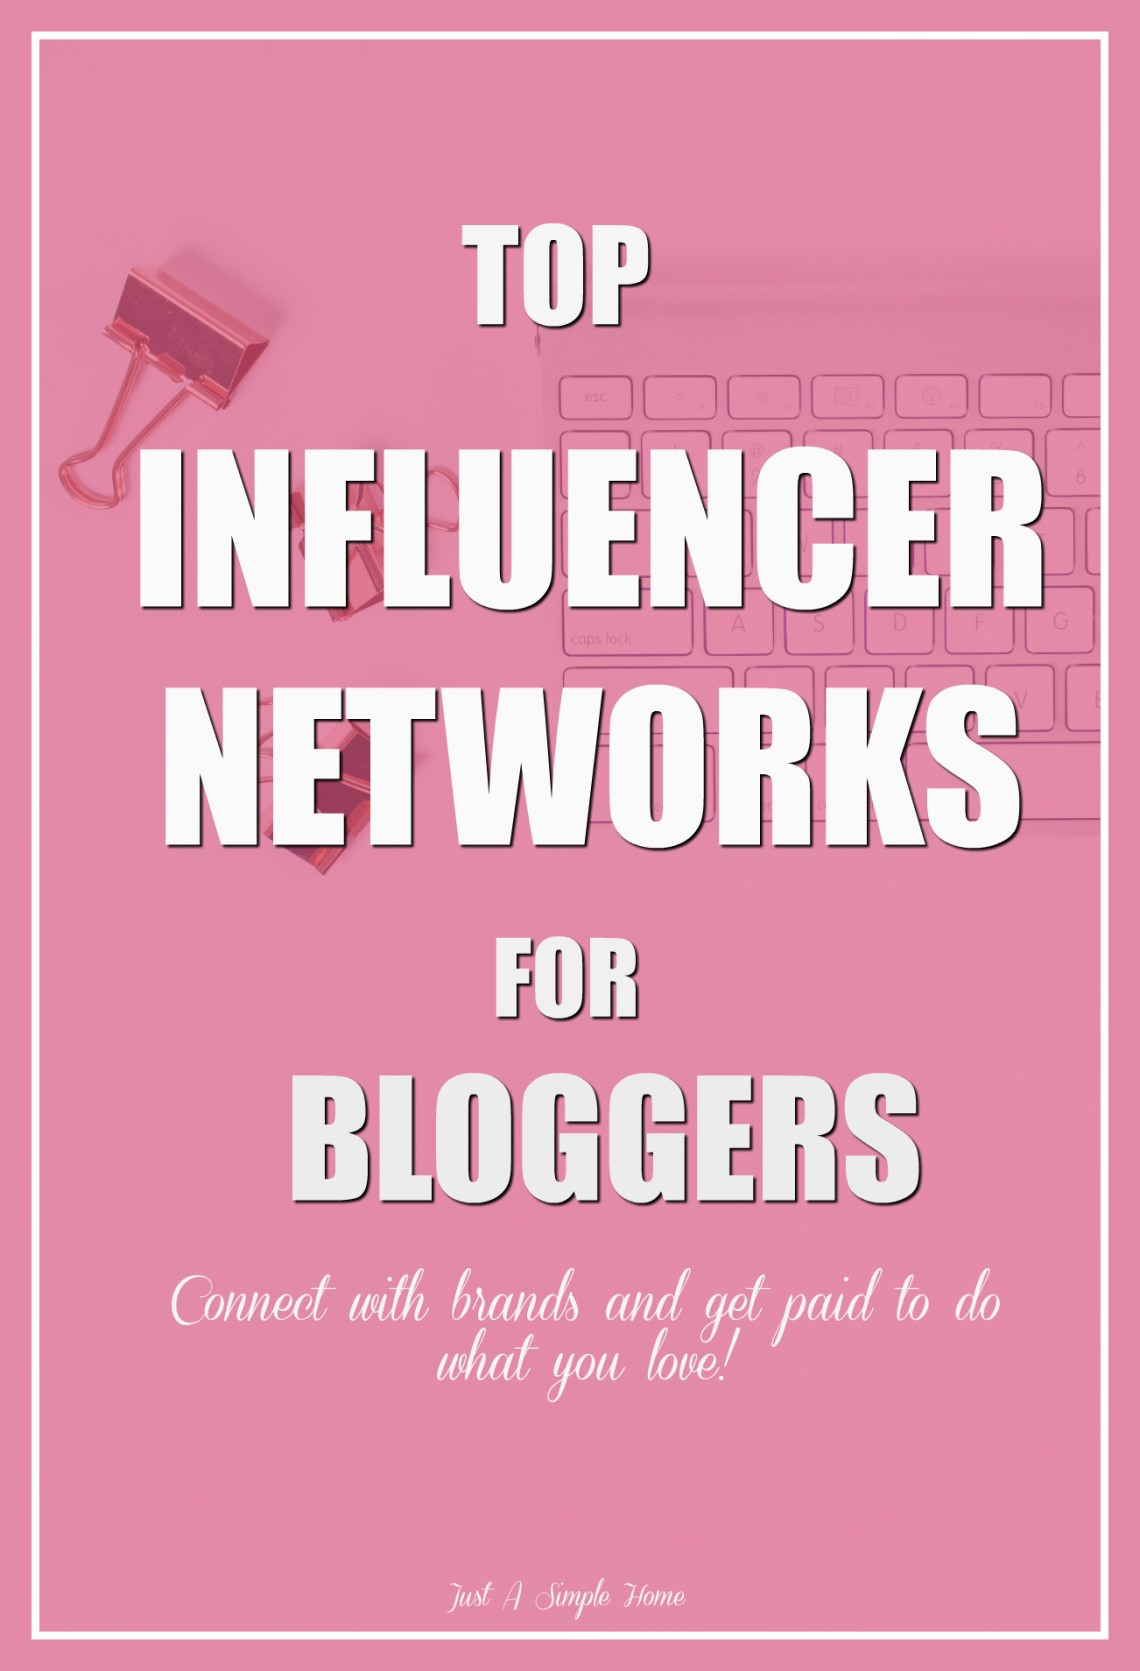 Looking to make blogging a full time job? Join Influencer Networks and get paid to do what you love! This is a list of the Top Influencer Networks to join as a Blogger.